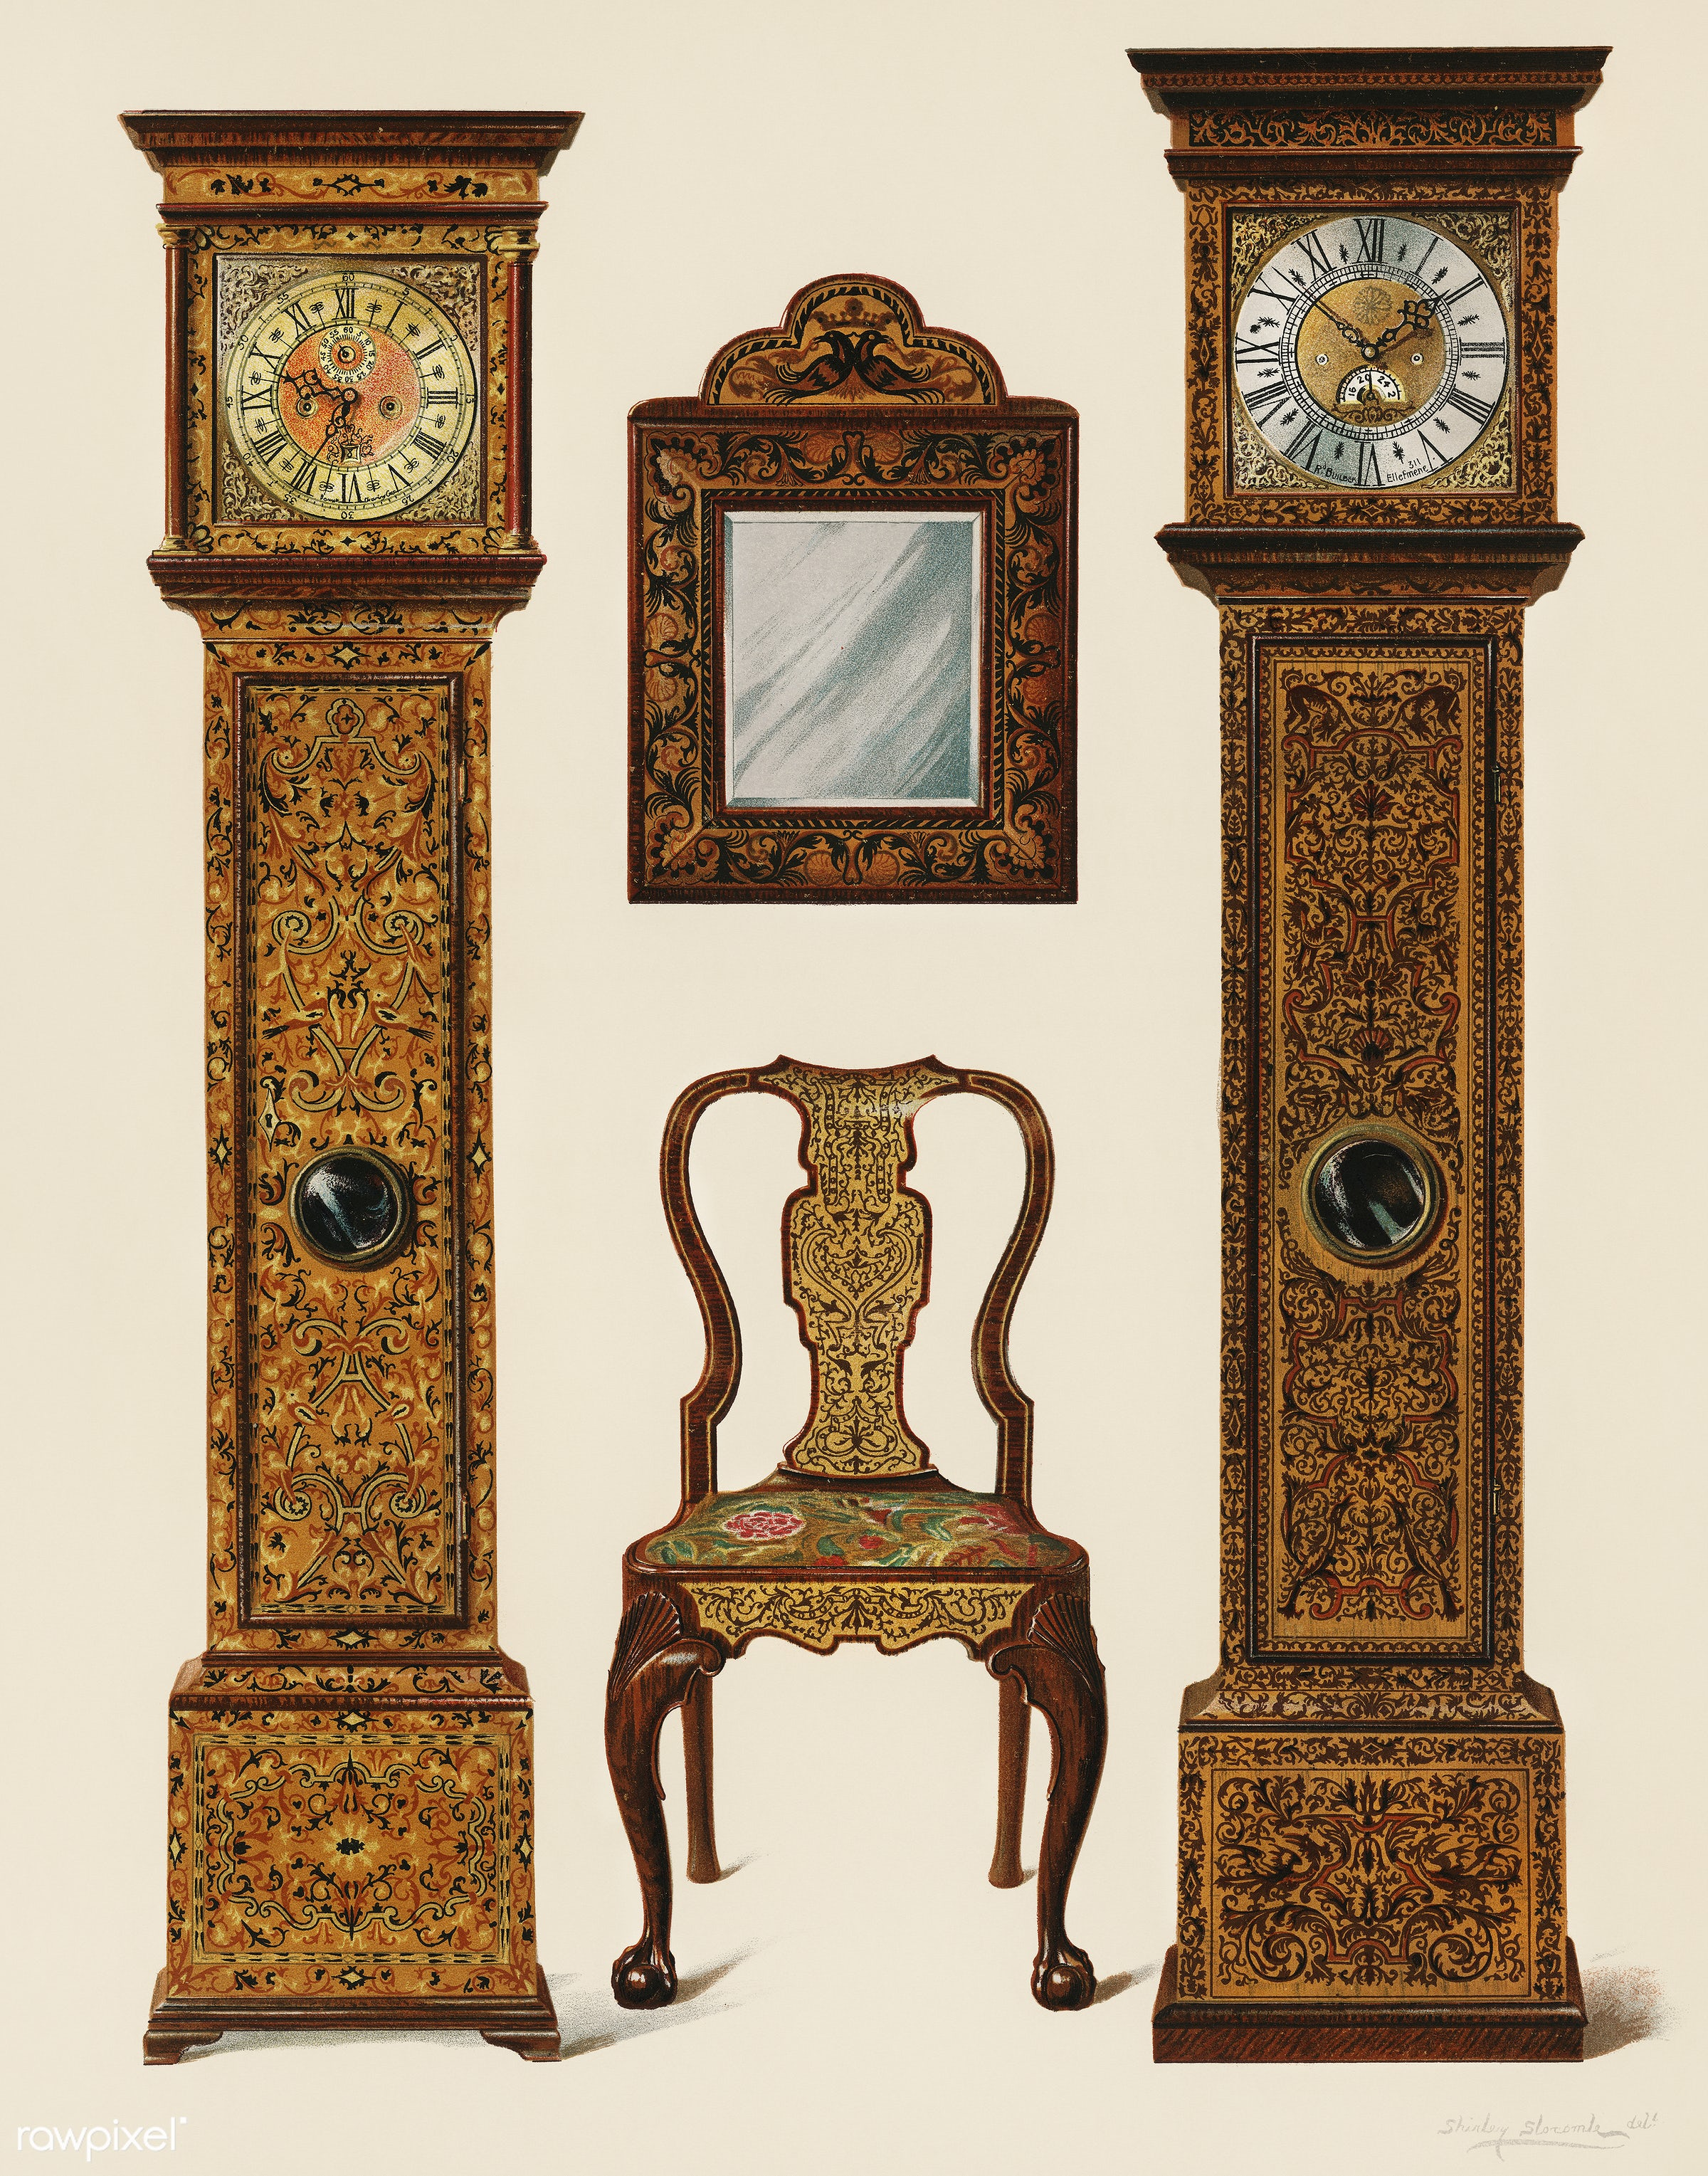 An illustration of Edwardian furniture (1905) drawn by Shirley Slocombe, a beautifully detailed design of a wooden chair,...